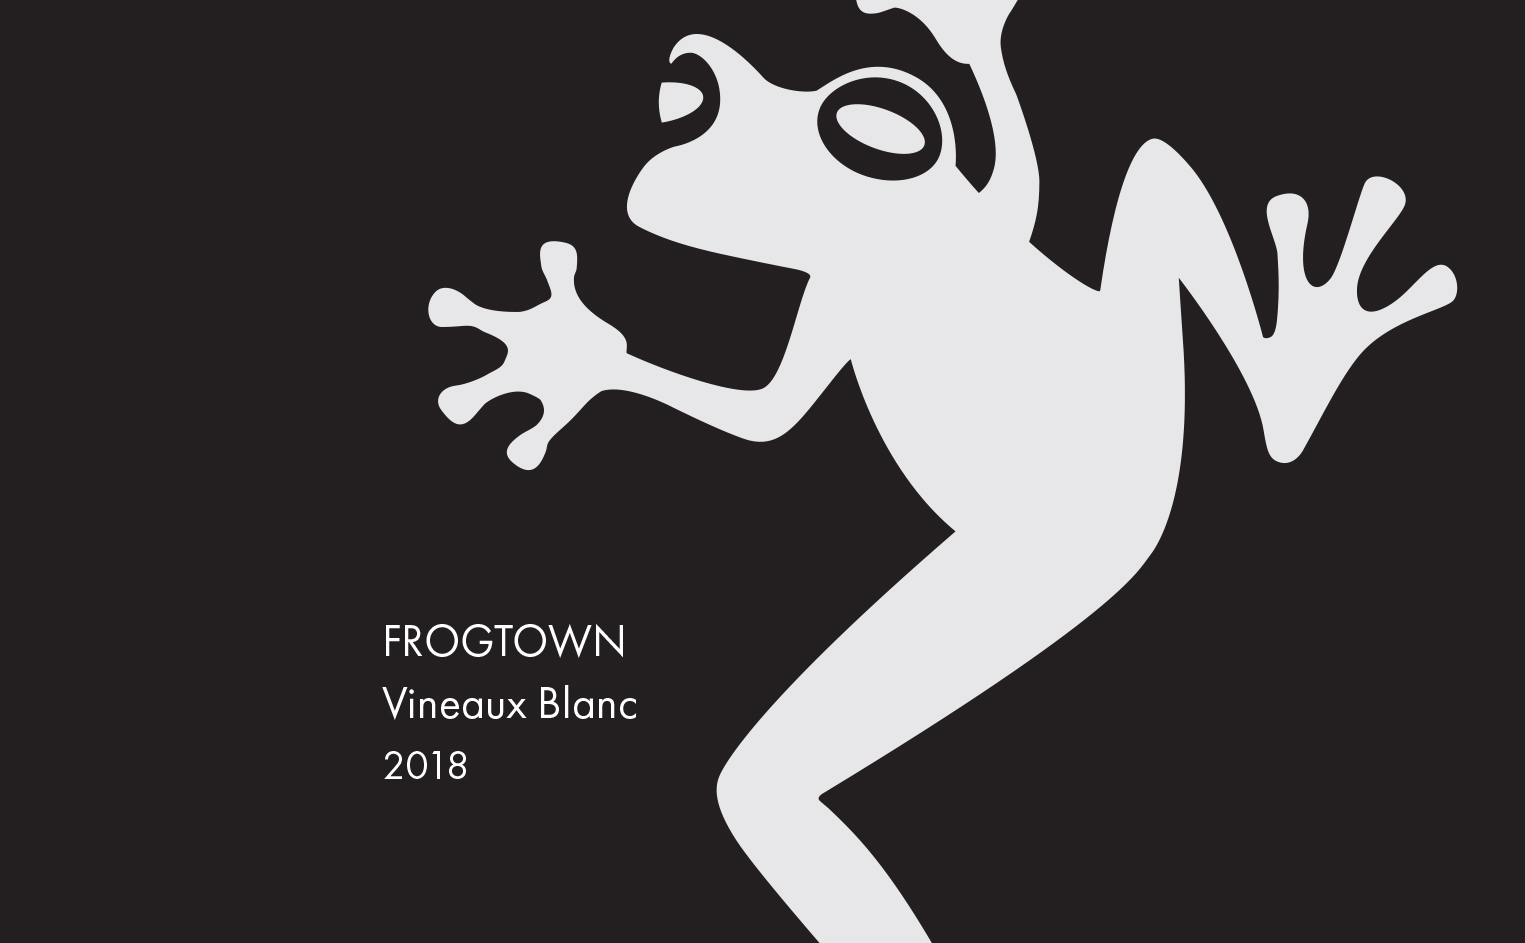 <b>Frogtown</b></br>Vineaux Blanc</br>2018 MAIN